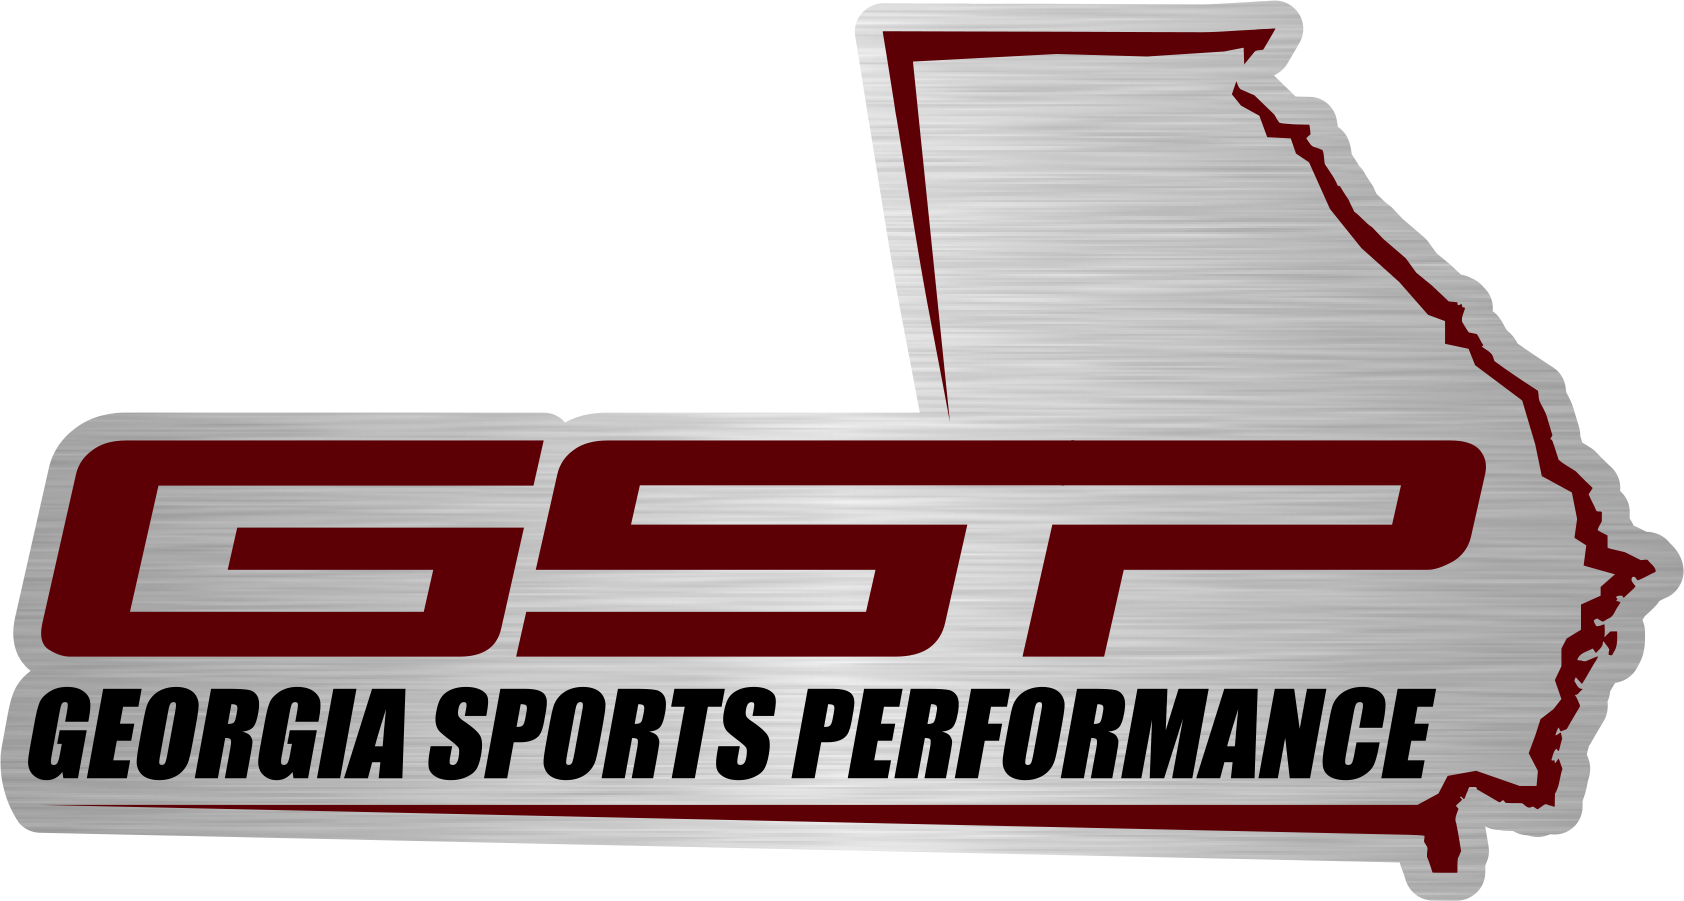 Georgia Sports Performance Mobile Retina Logo